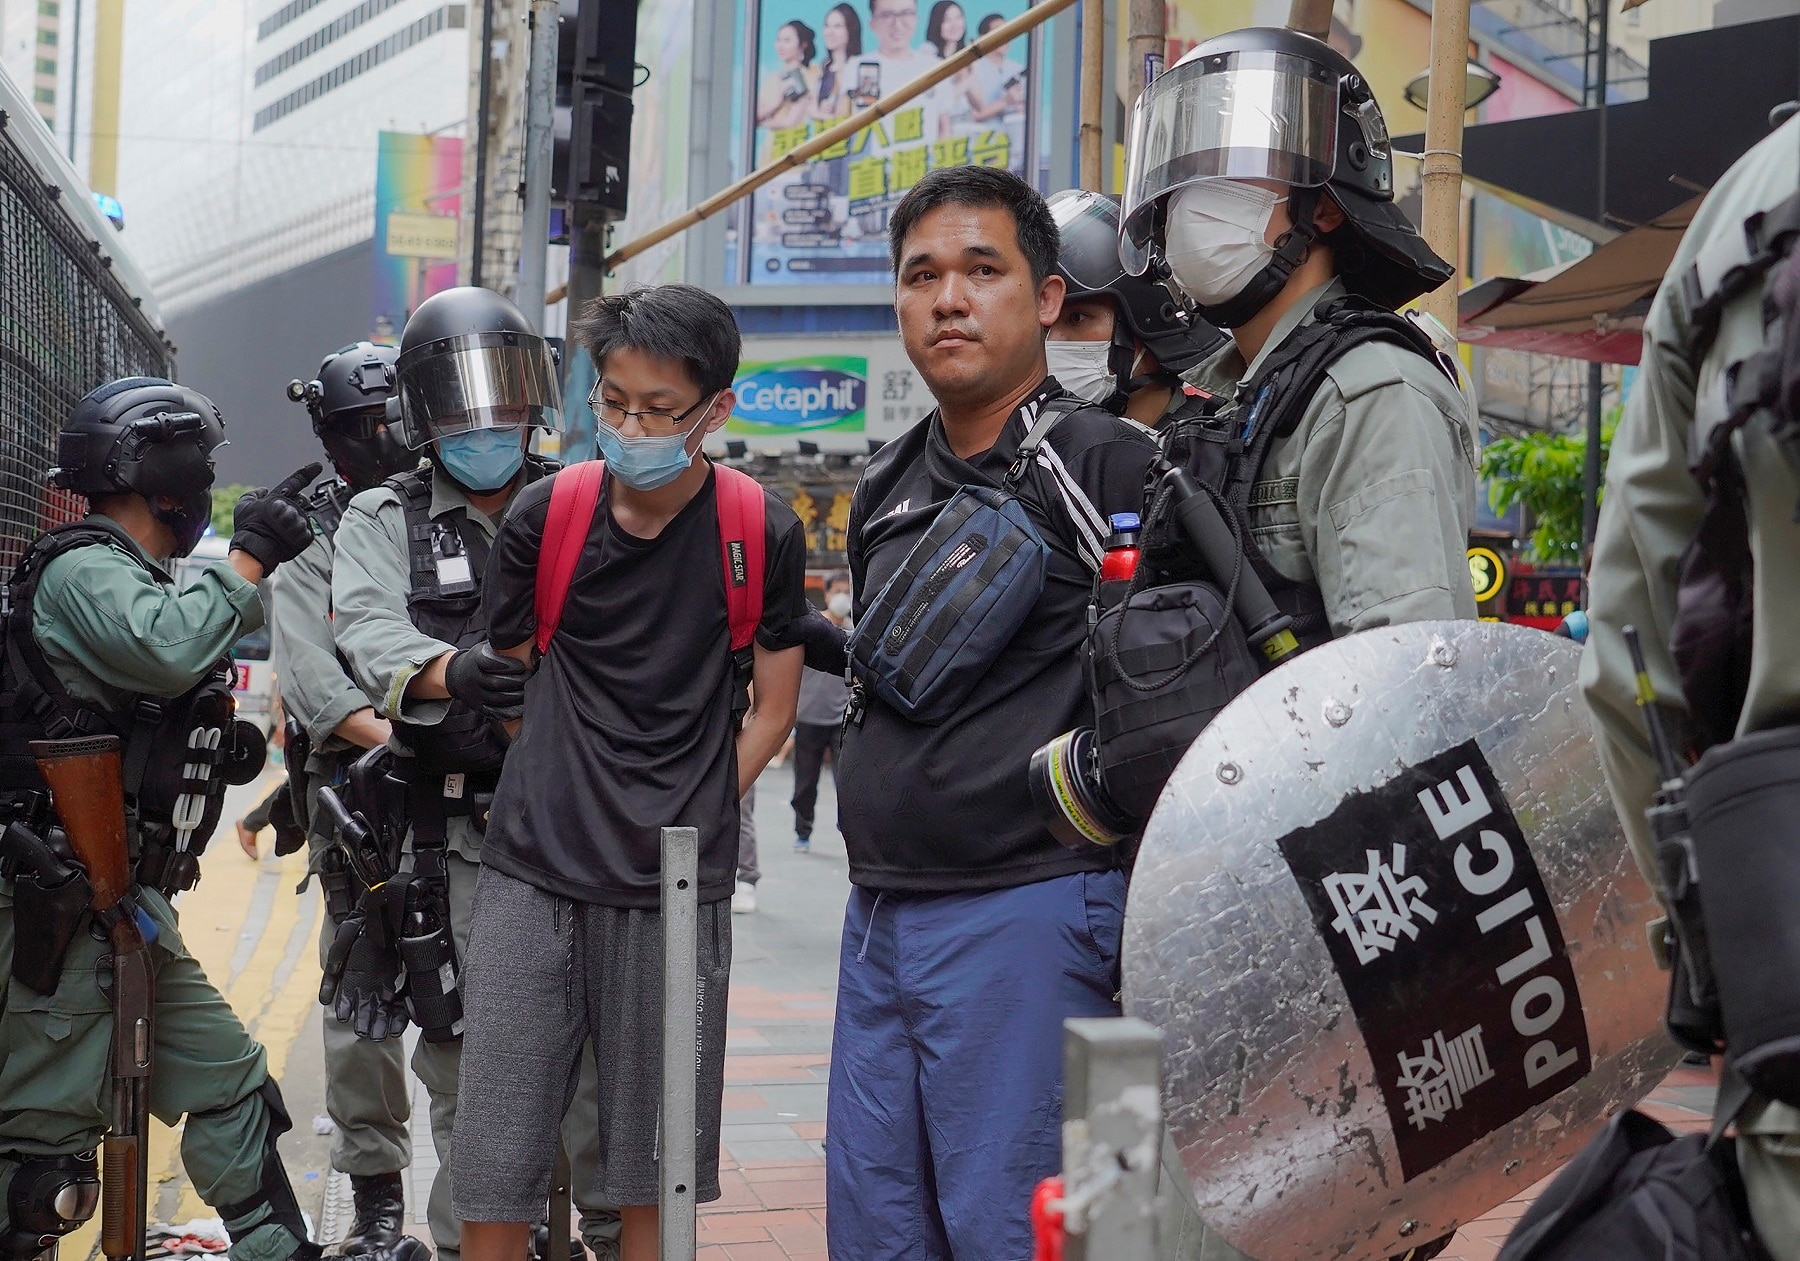 Riot police arrest protesters during a rally against a proposed security law.